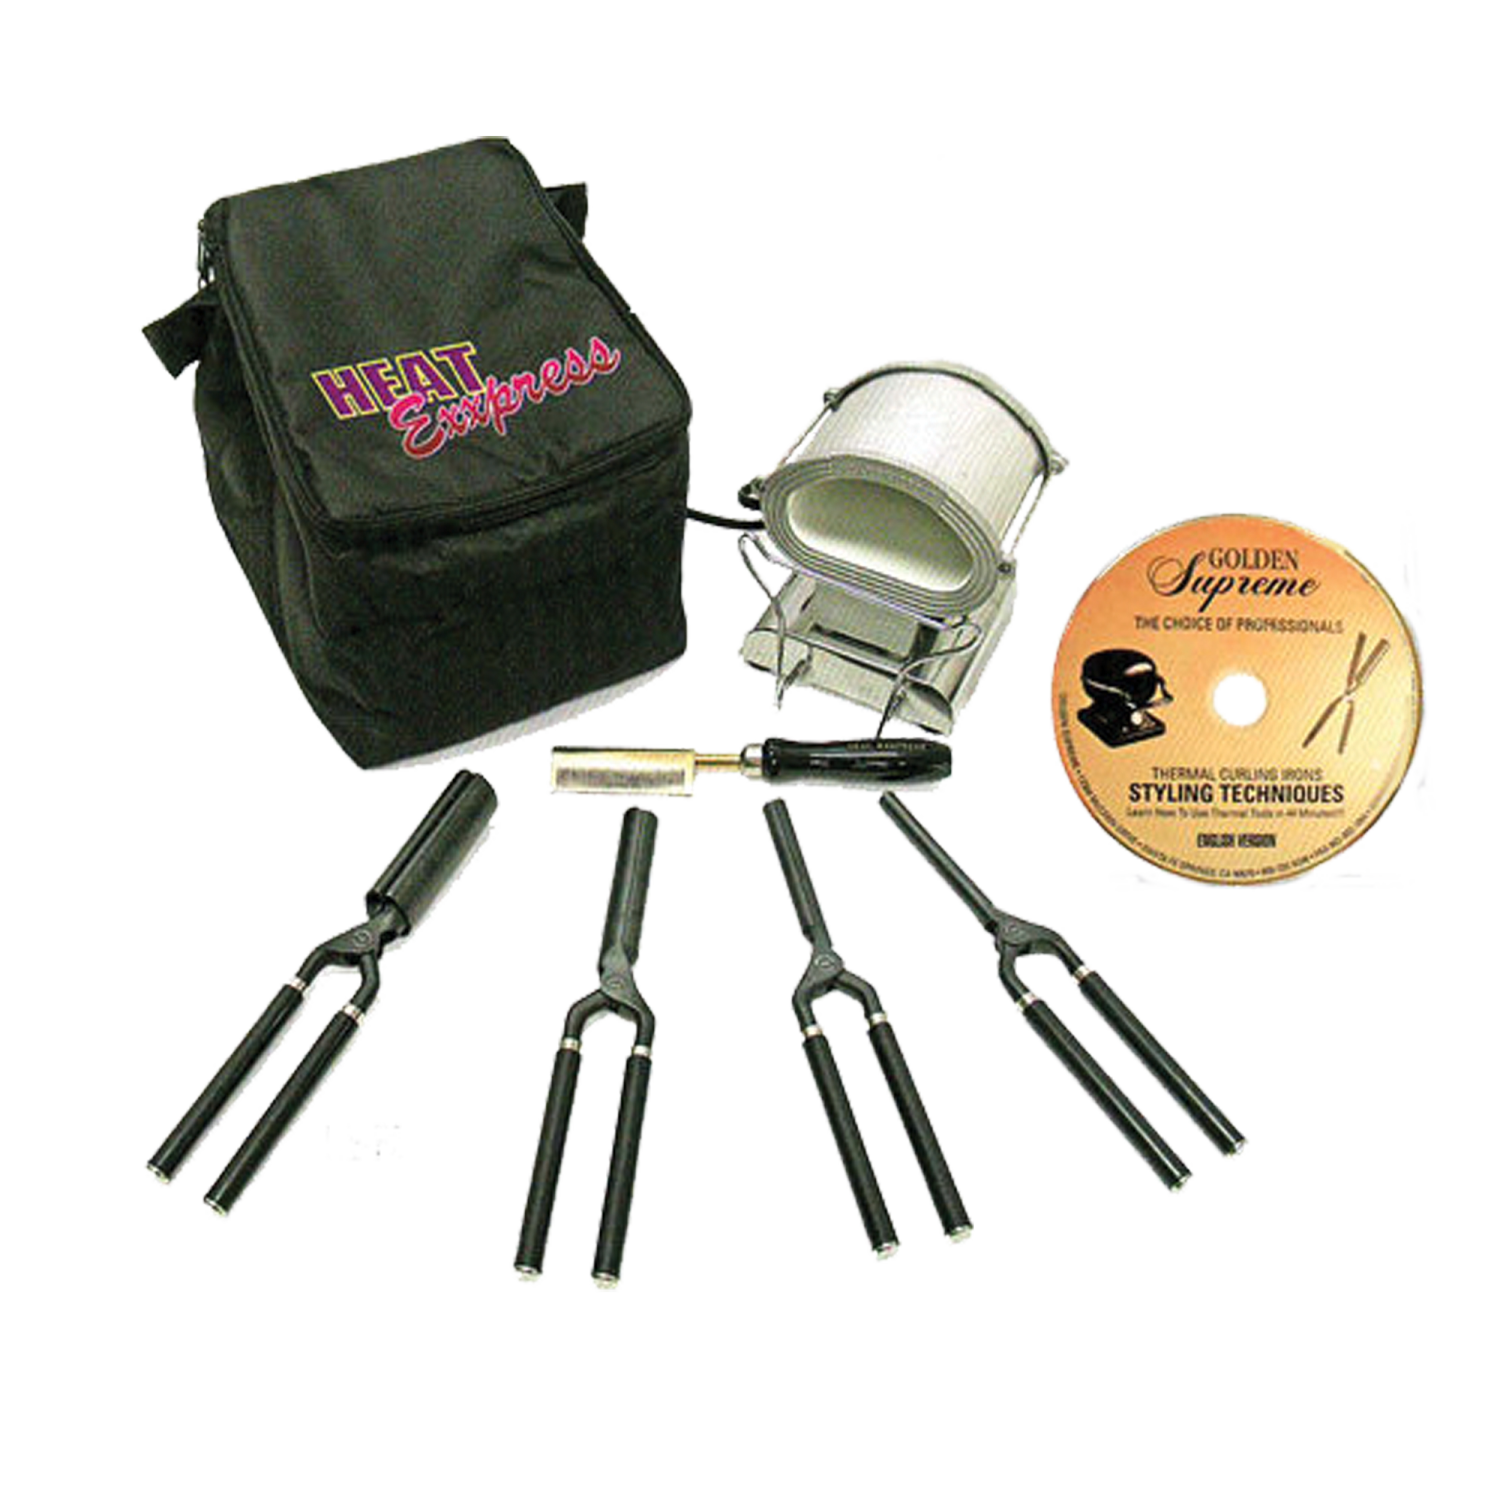 The Golden Supreme Heat Epress 7 1 Thermal Styling Kit Is An Affordable And Quality Made That Perfect For Salon Use Or